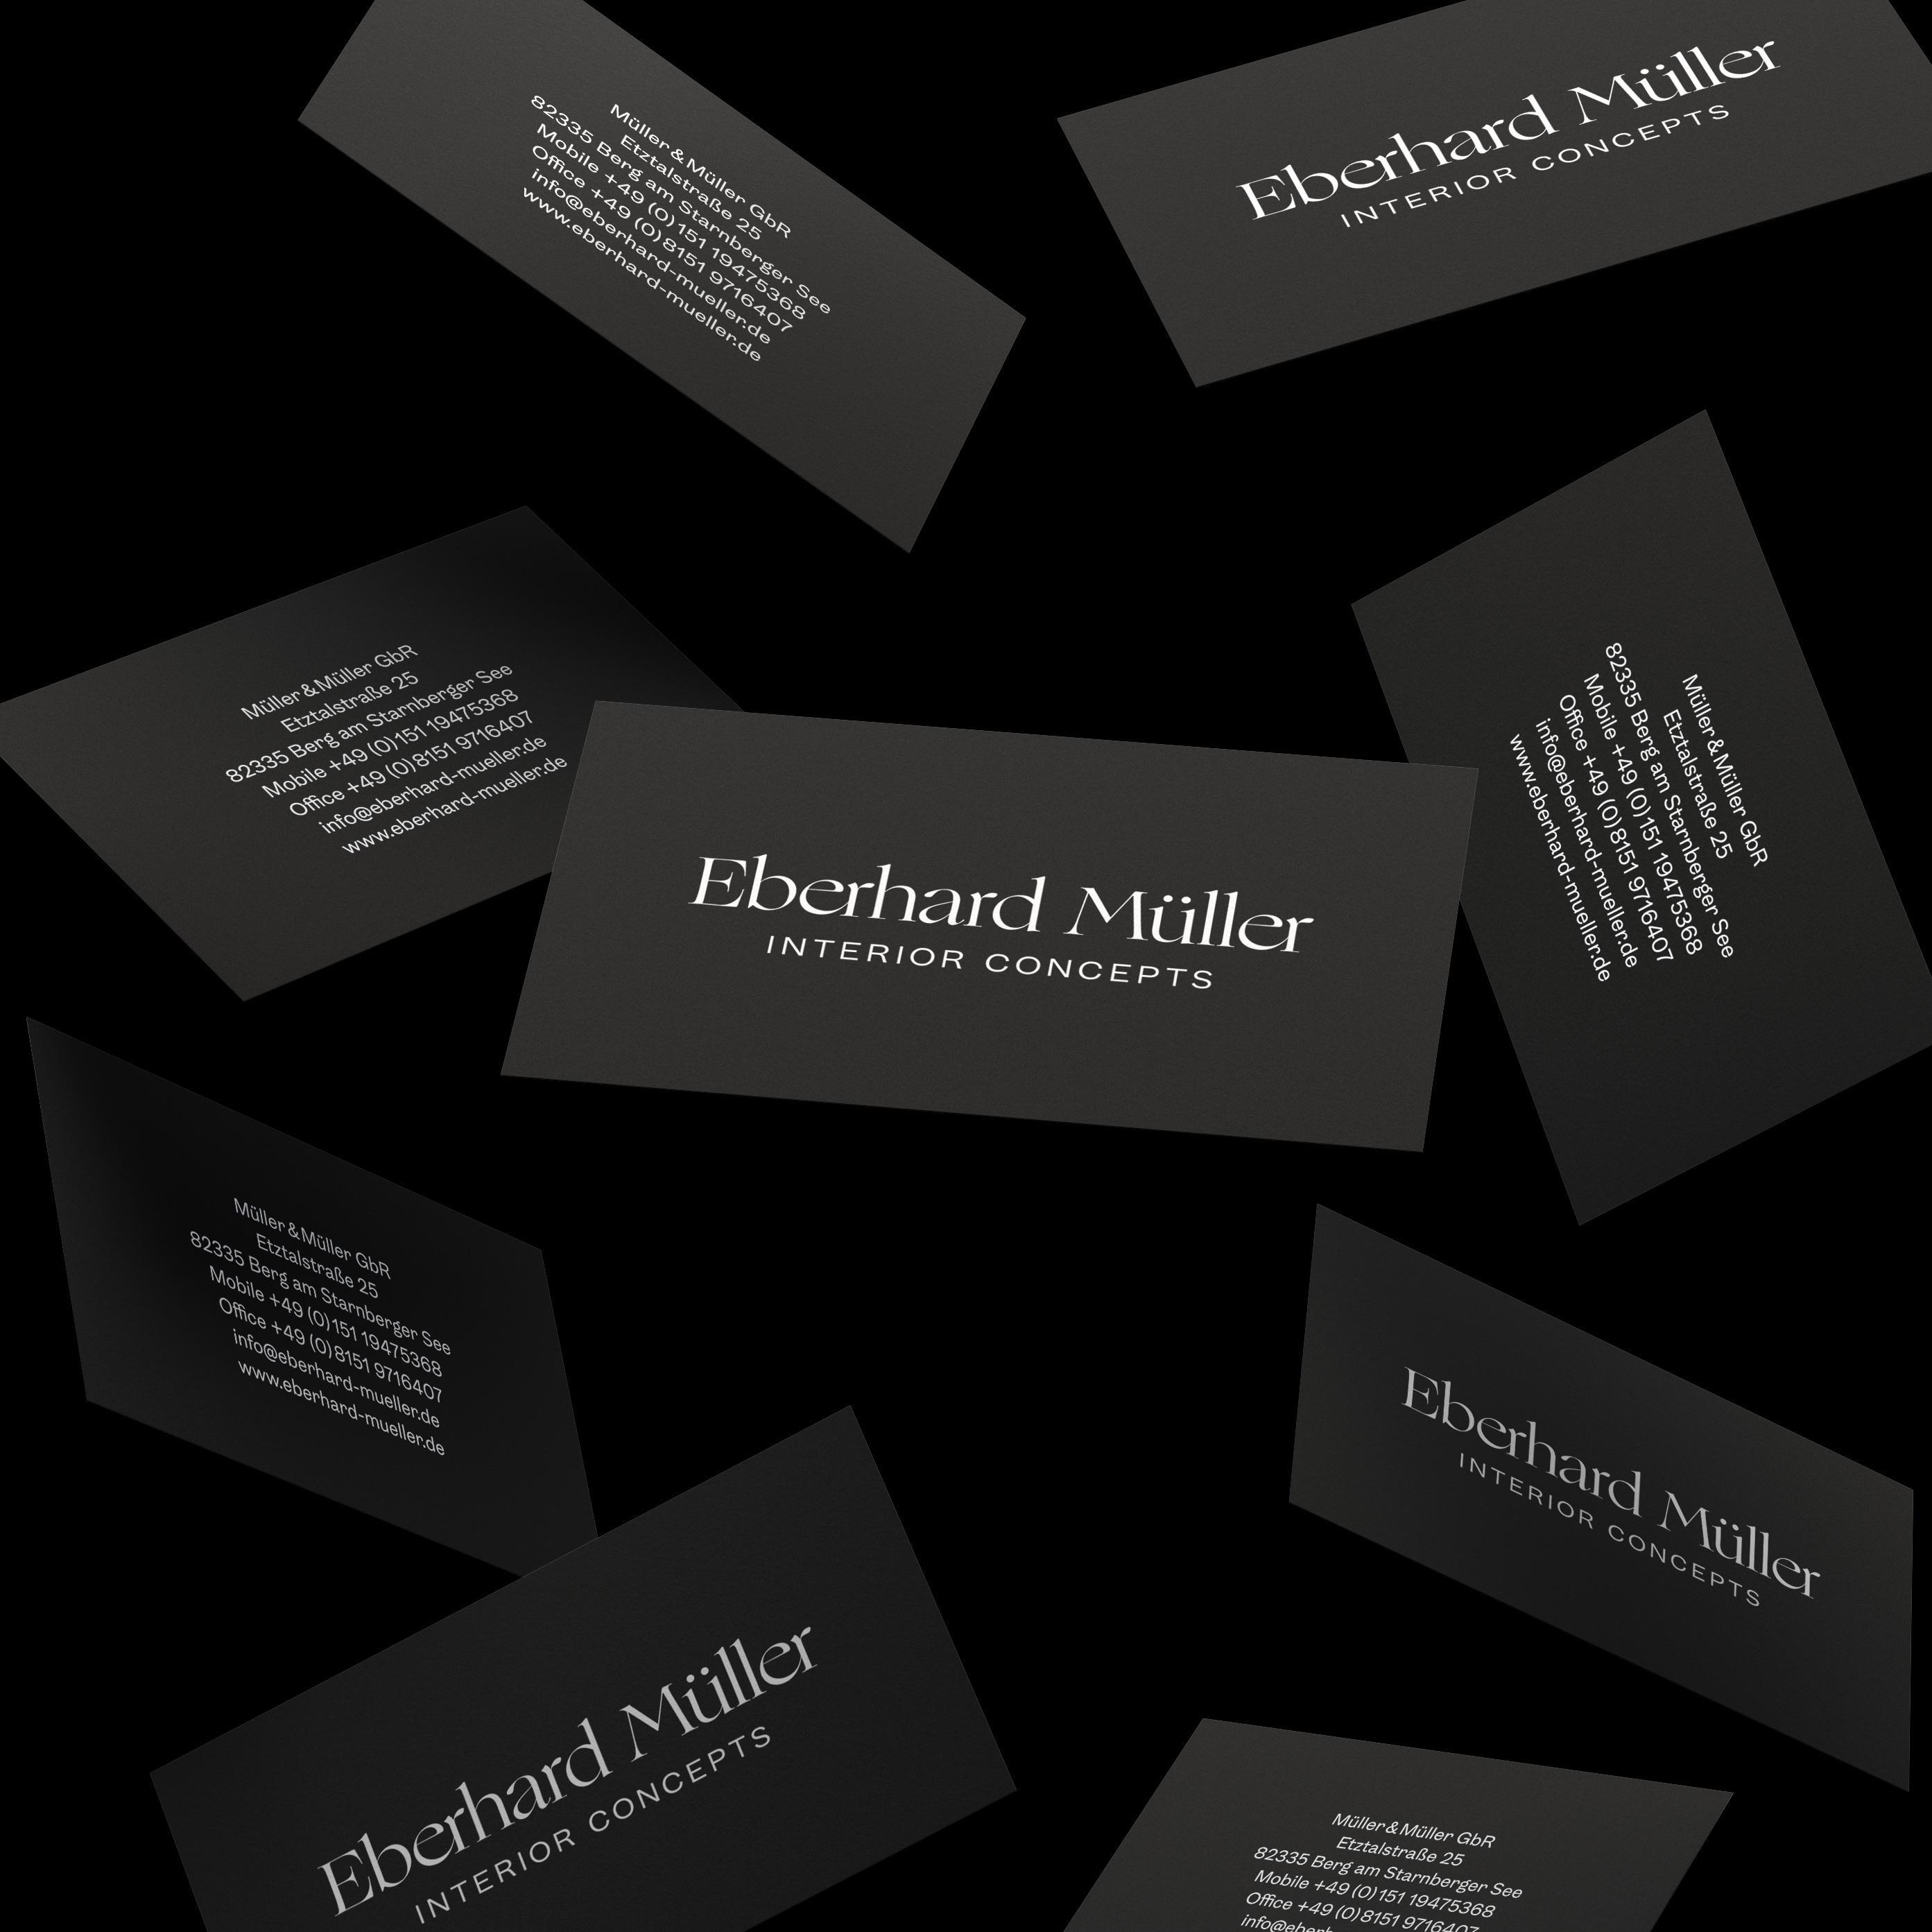 Redesigned business cards were part of brand's face lift.